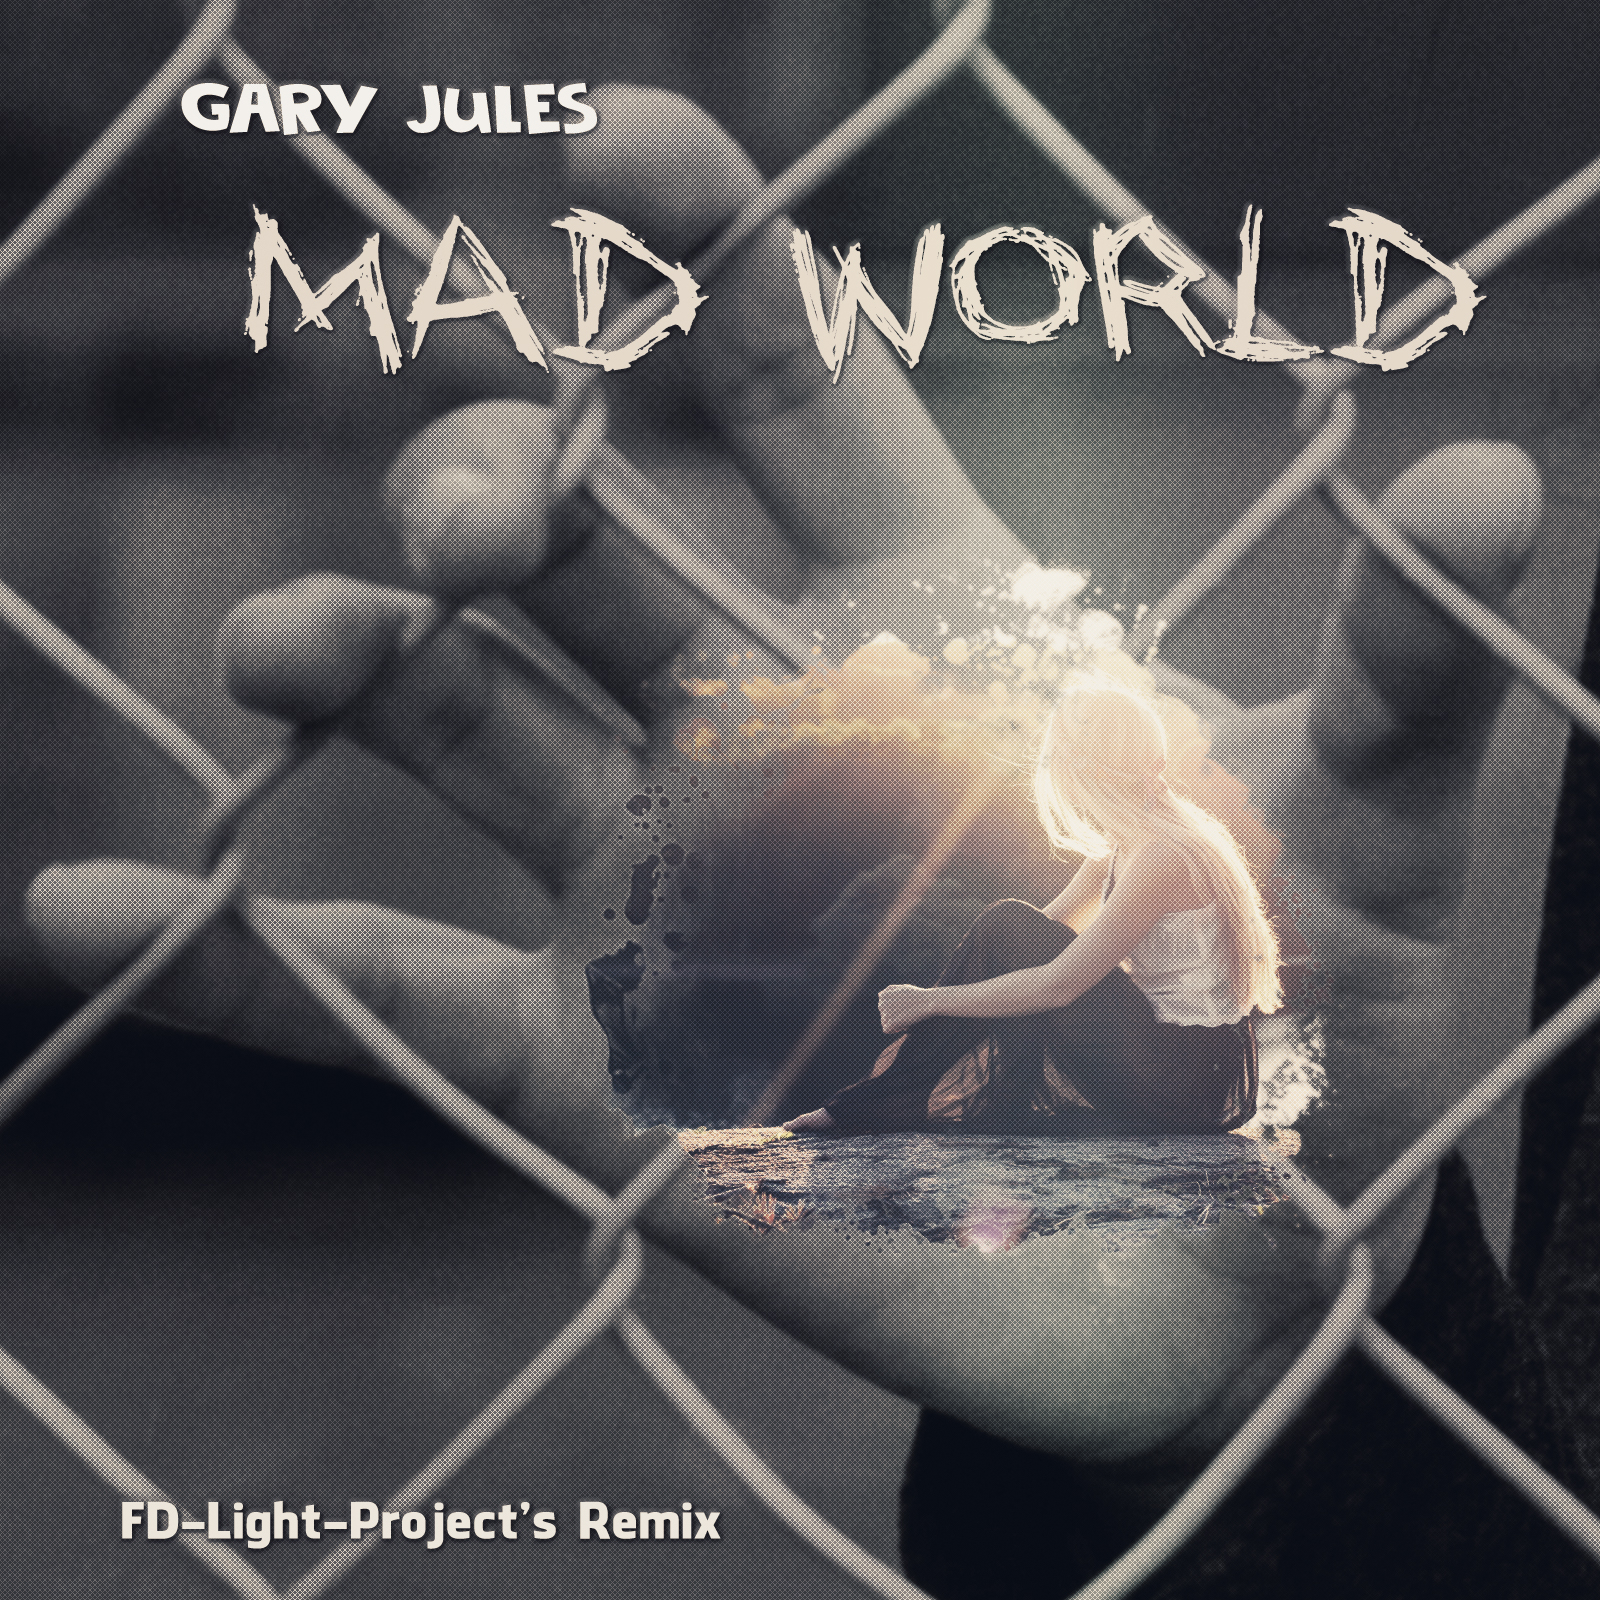 Mad World Gary Jules Fd-light-Project's remix